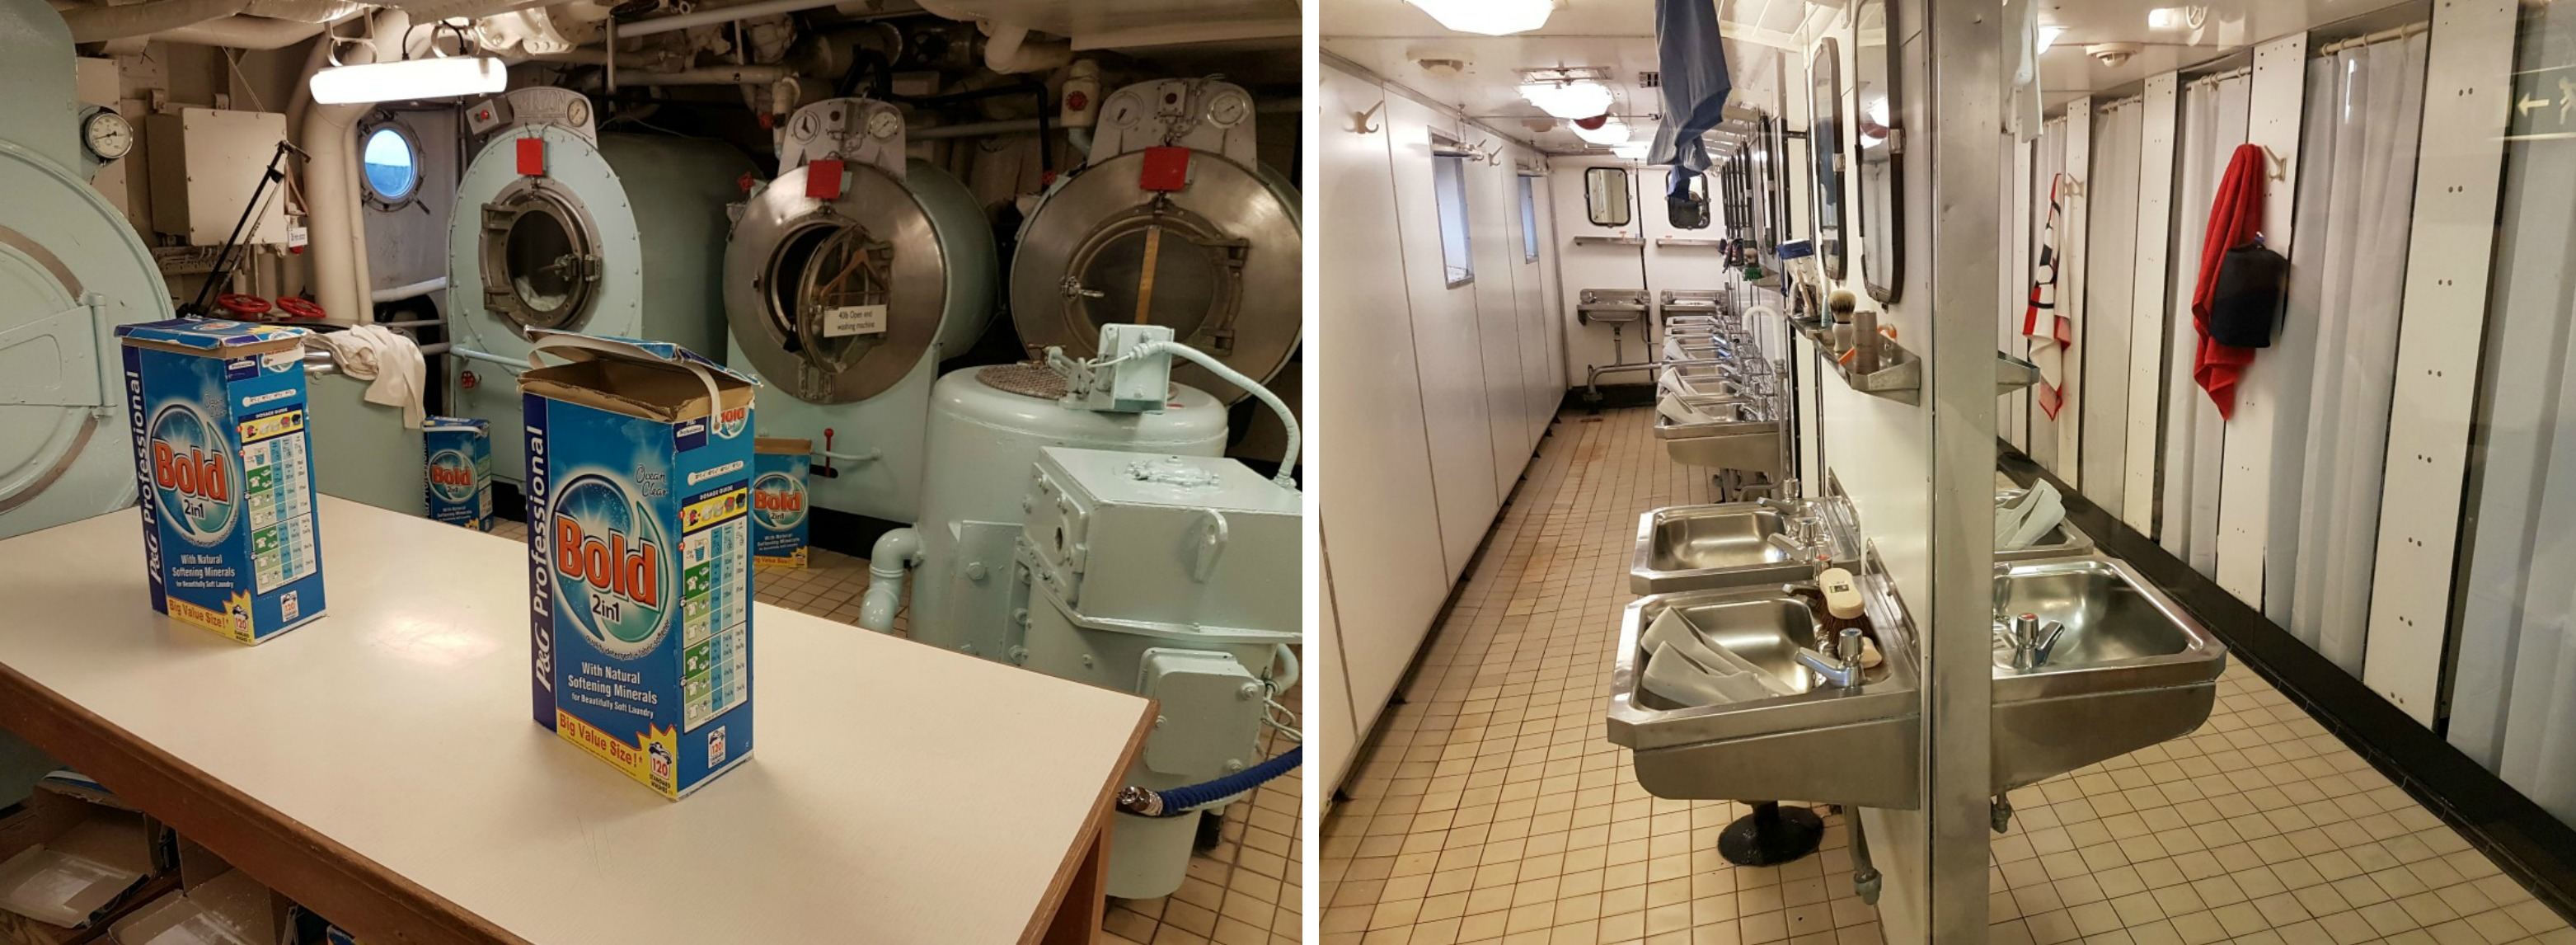 the-royal-yacht-britannia-laundry-room